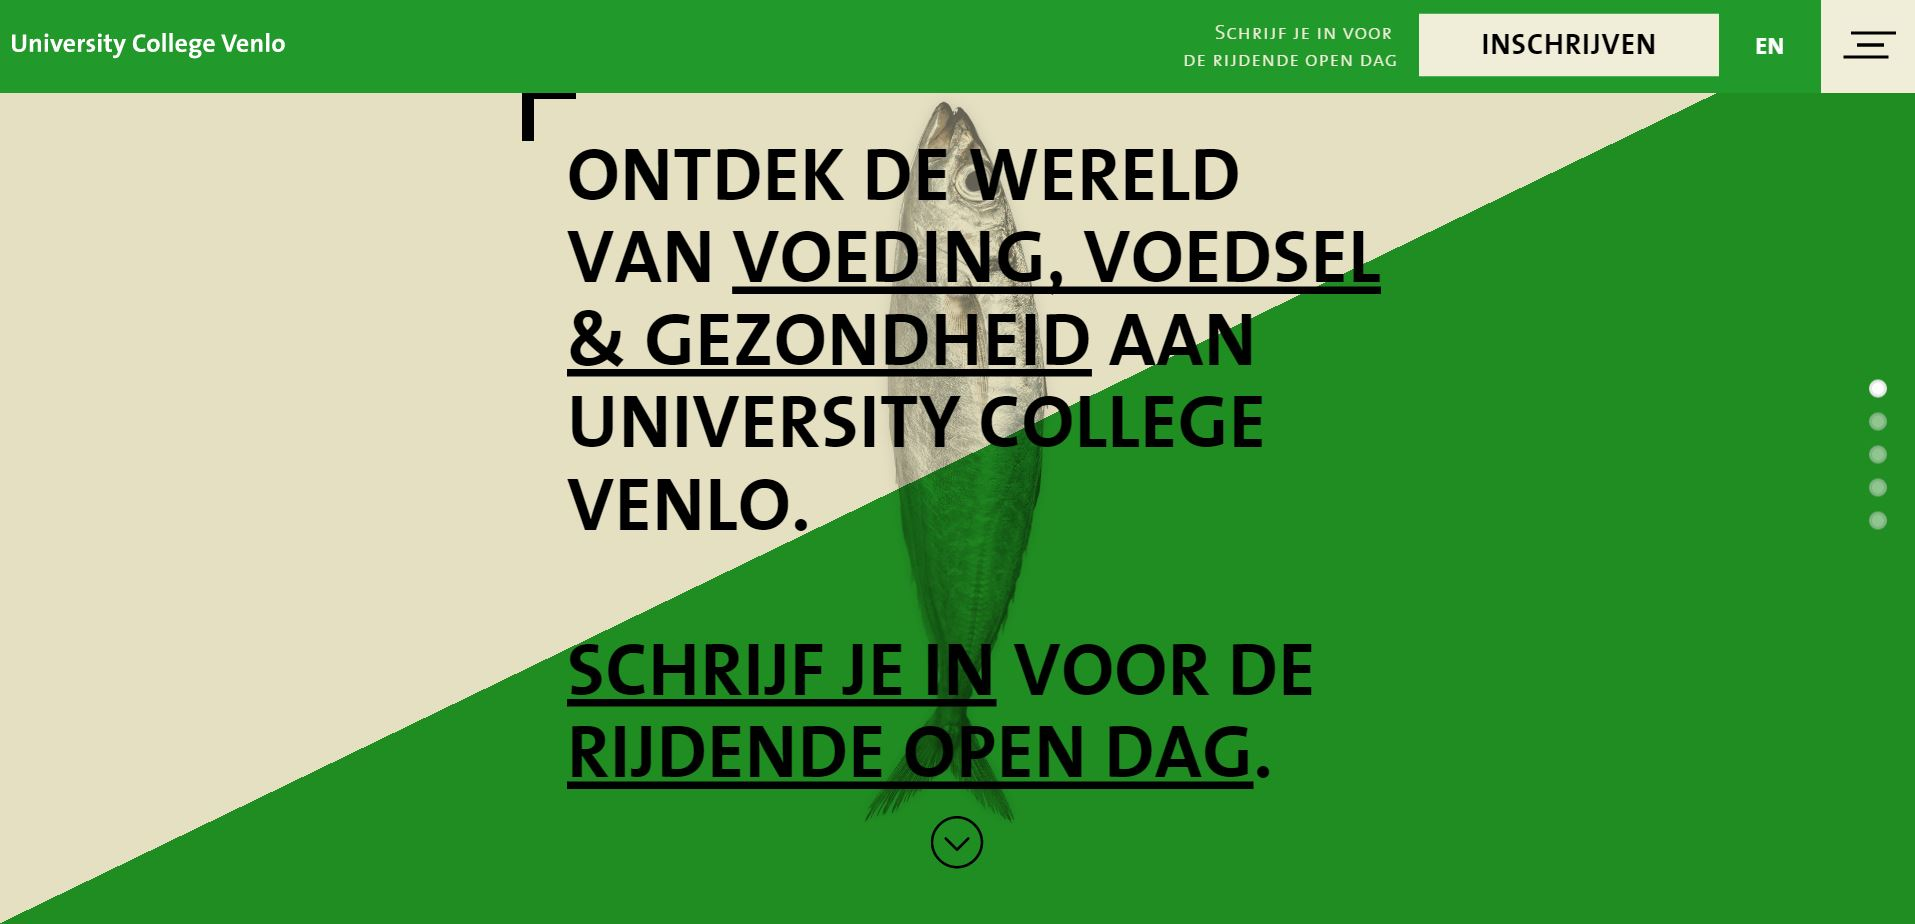 University College Venlo